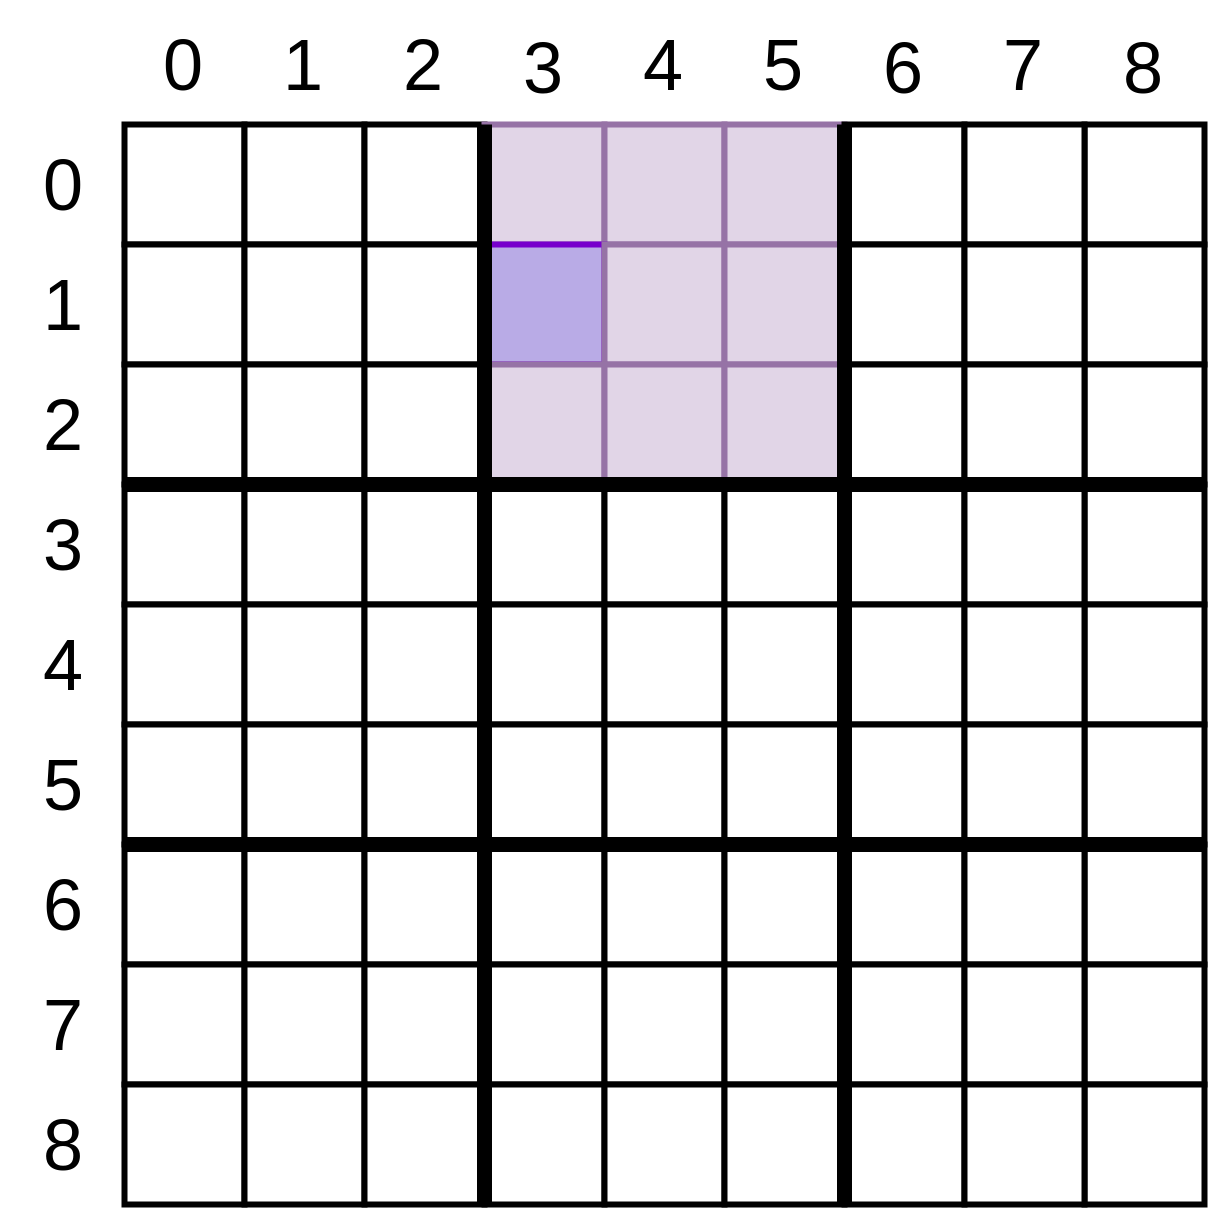 A Sudoku grid with one of the small squares highlighted.